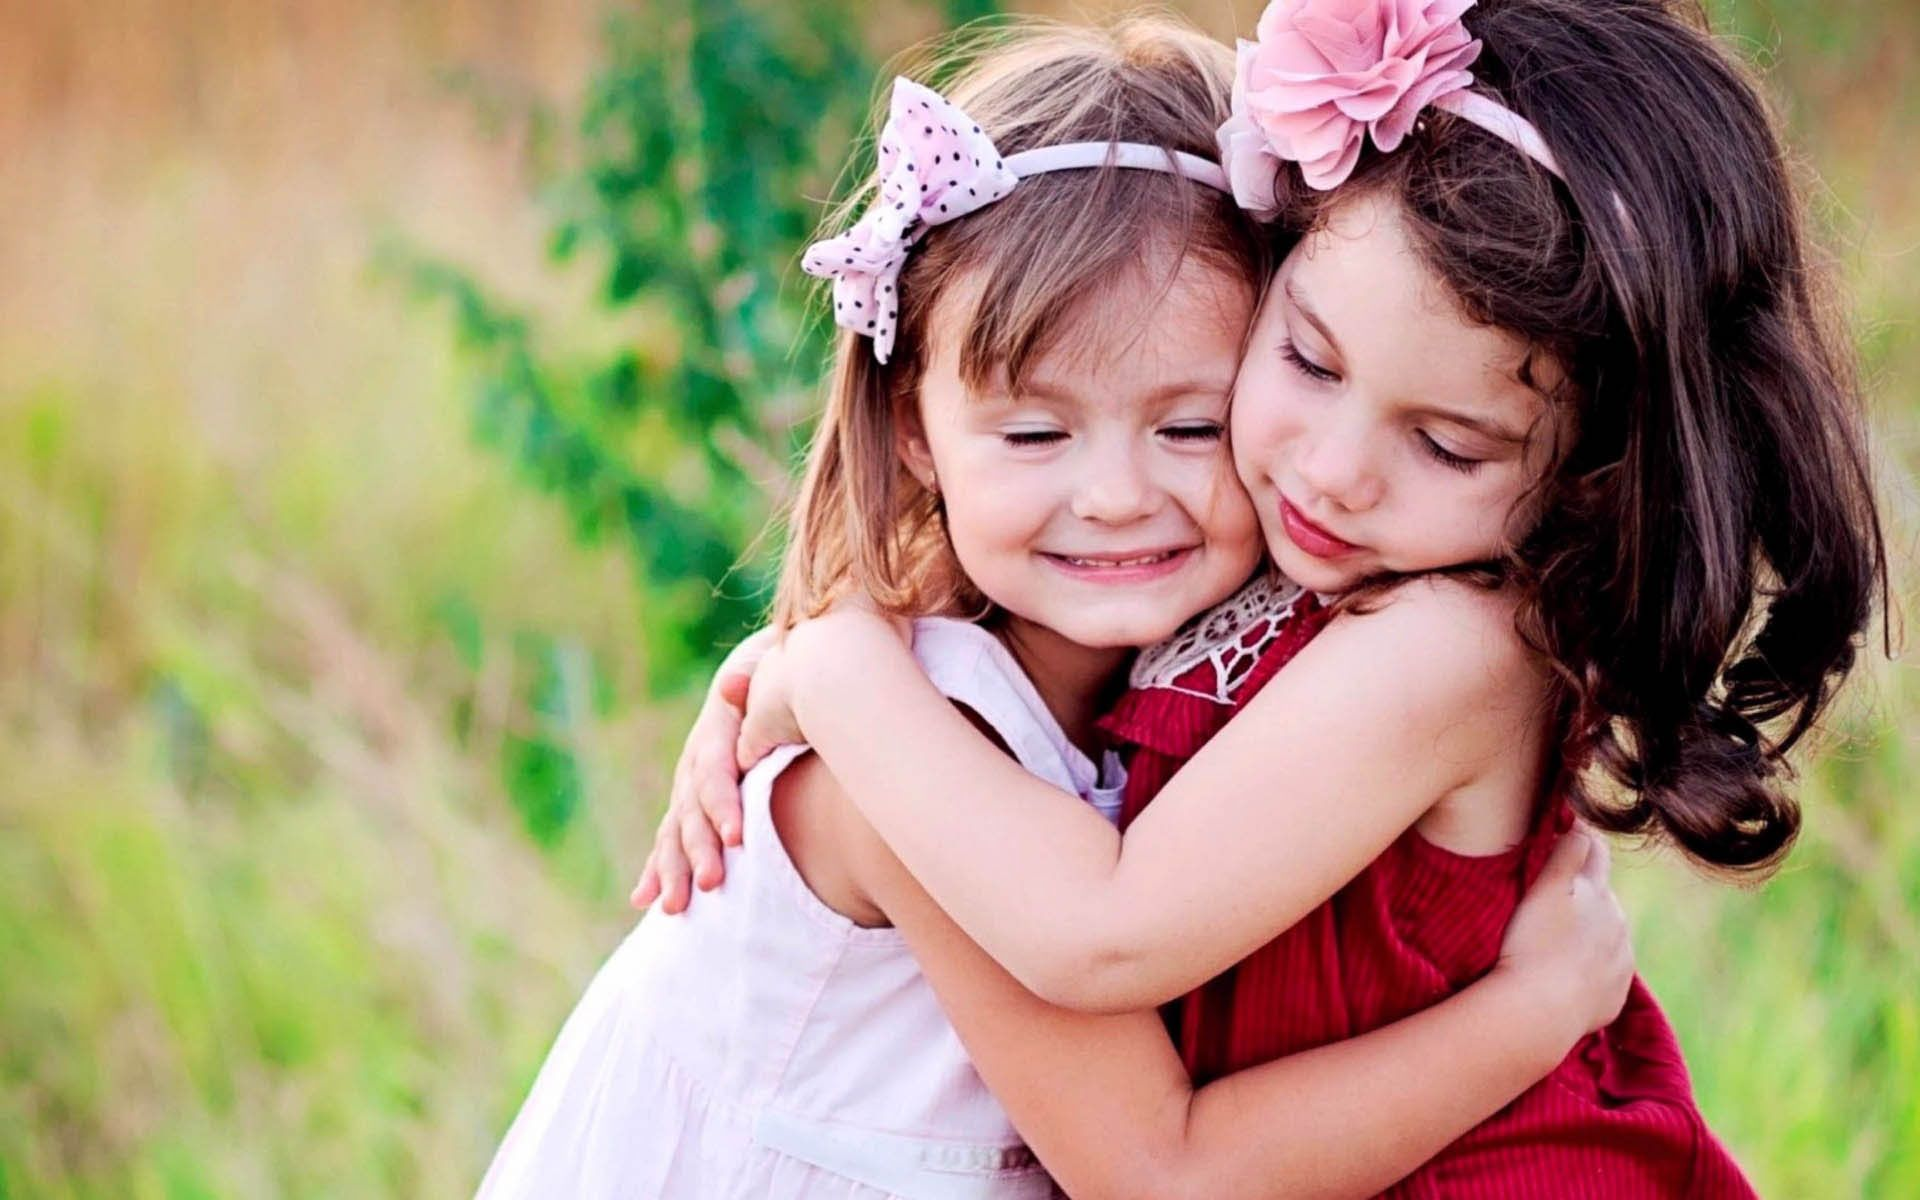 Cute Baby Images For Laptop Wallpaper